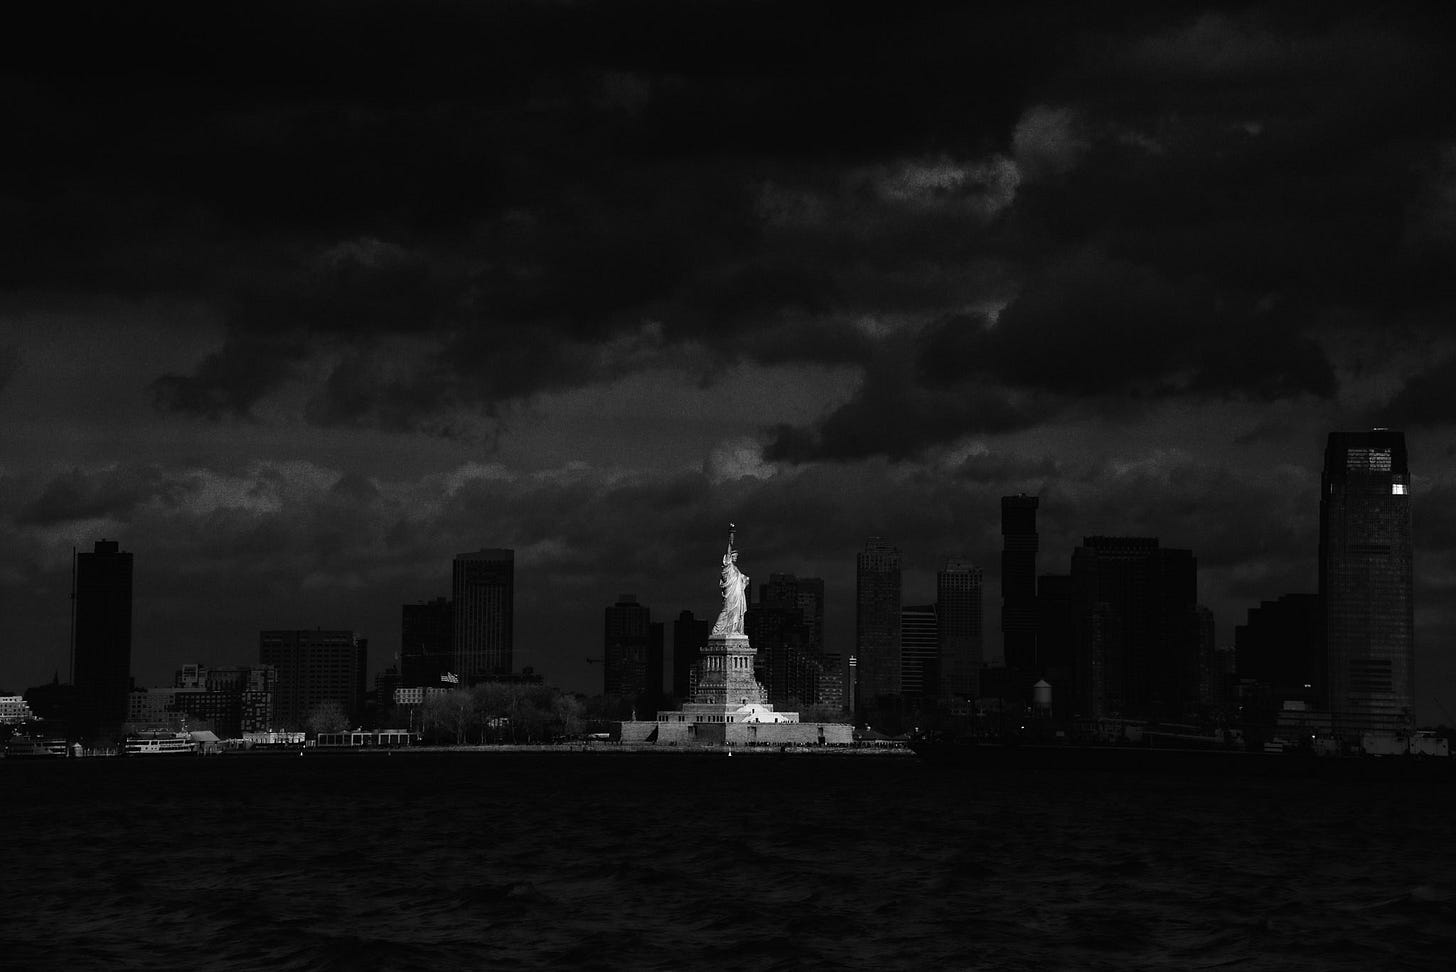 A black and white photo of the Statue of Liberty brightly lit against a dark cityscape.